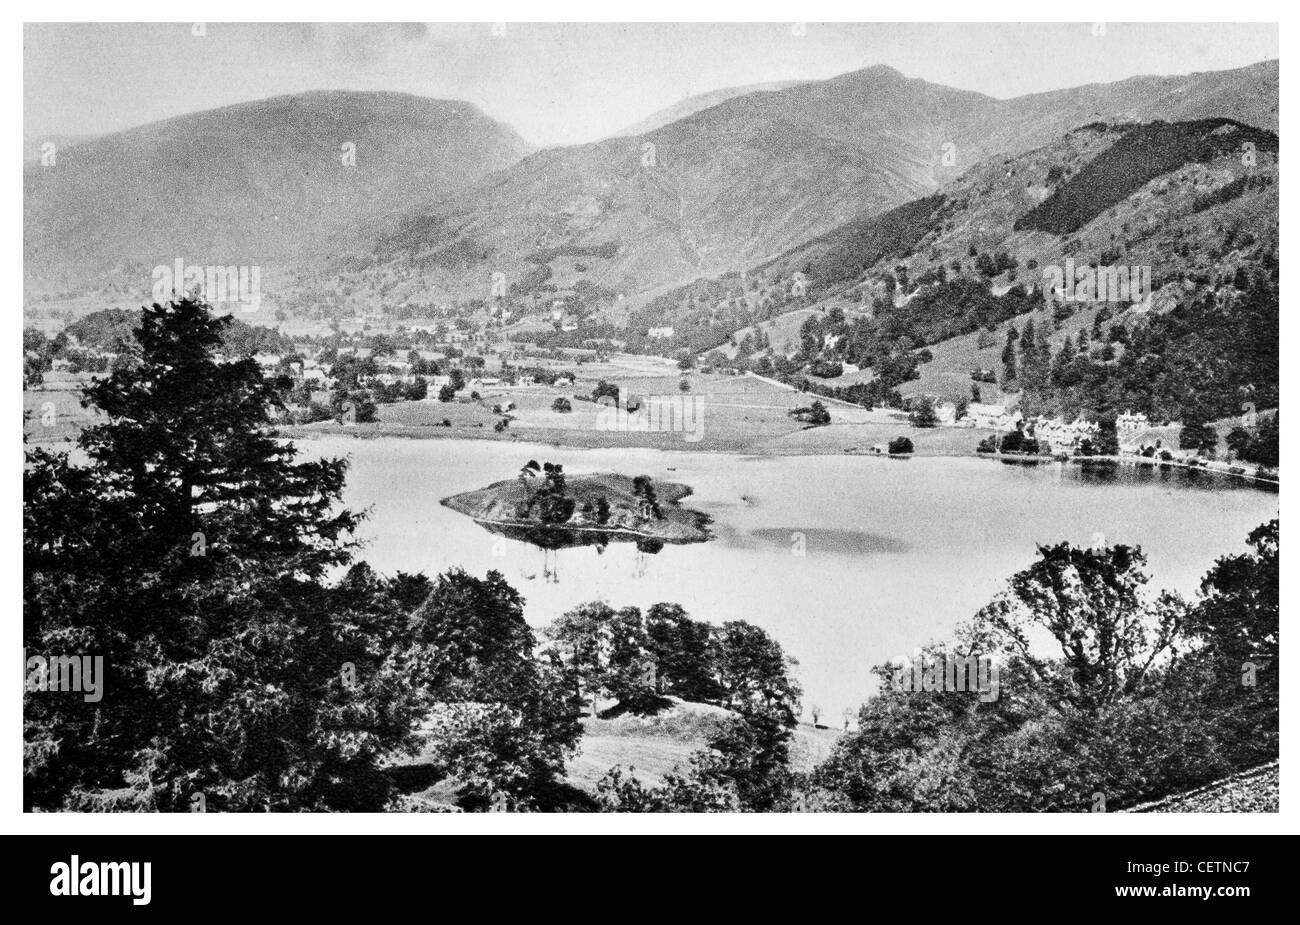 Grasmere Lake and Village - Stock Image